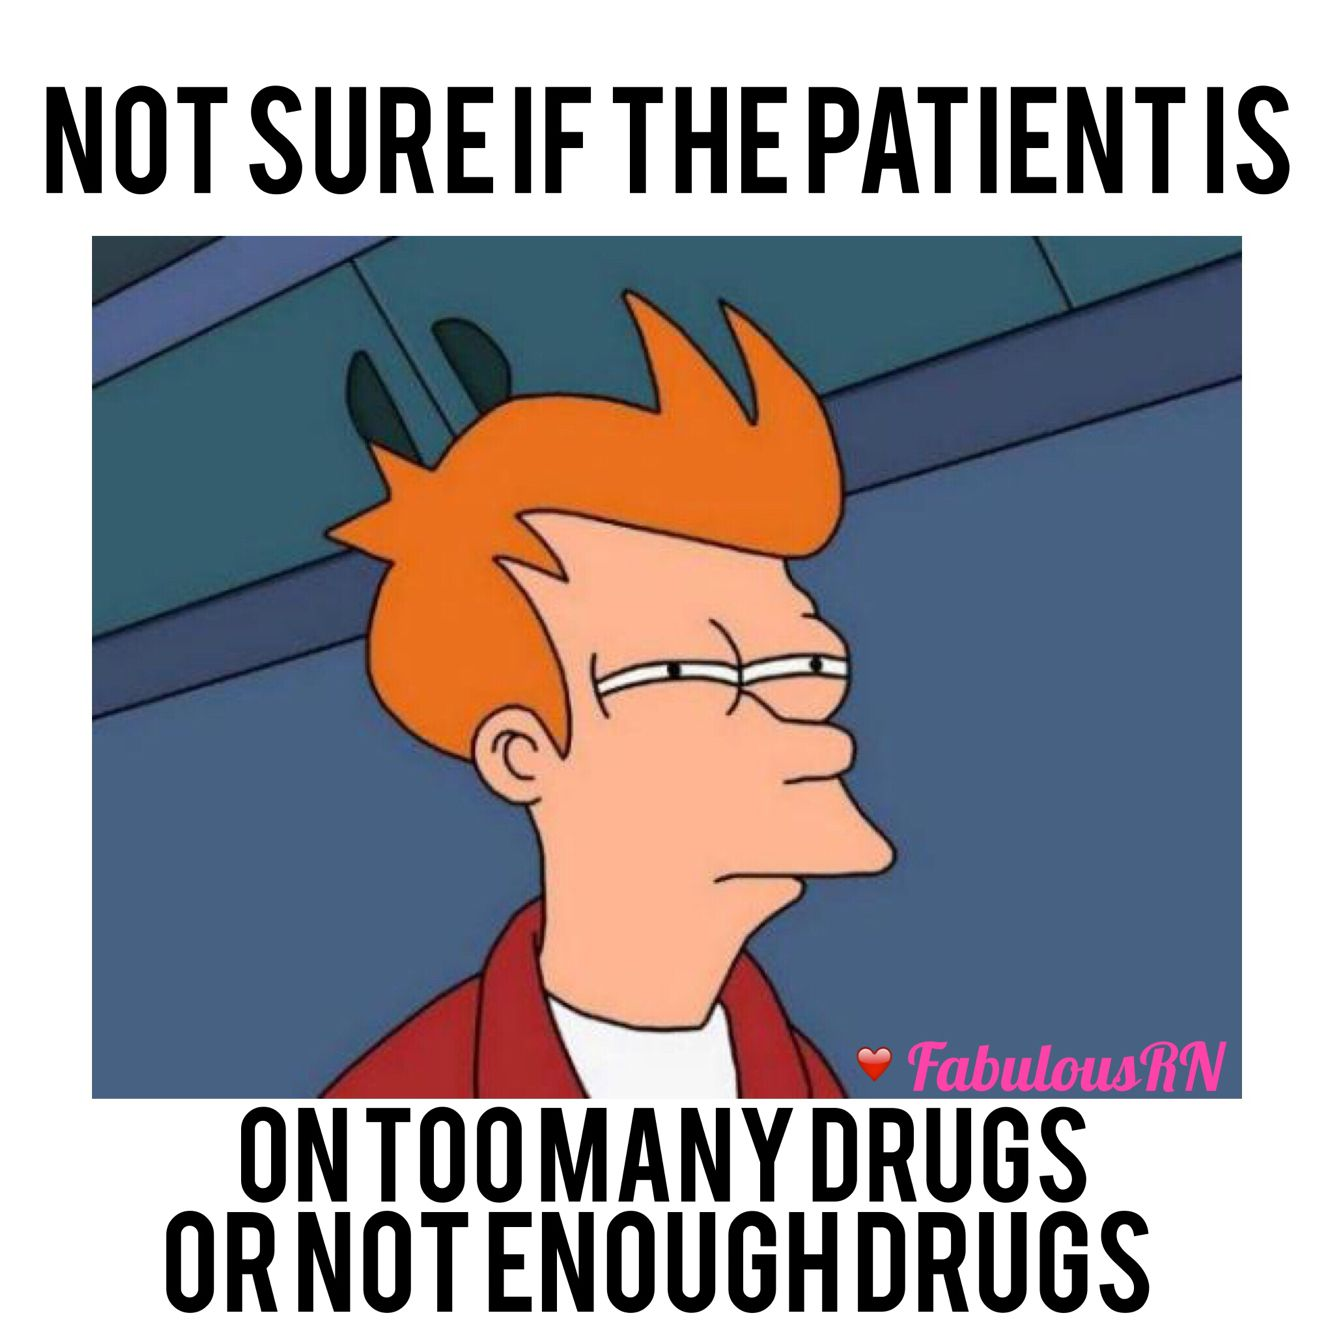 Cartoon physical therapy - Day 5 On A Morphine Pca With A 2mg Basal Rate And A 1mg Pt Bolus